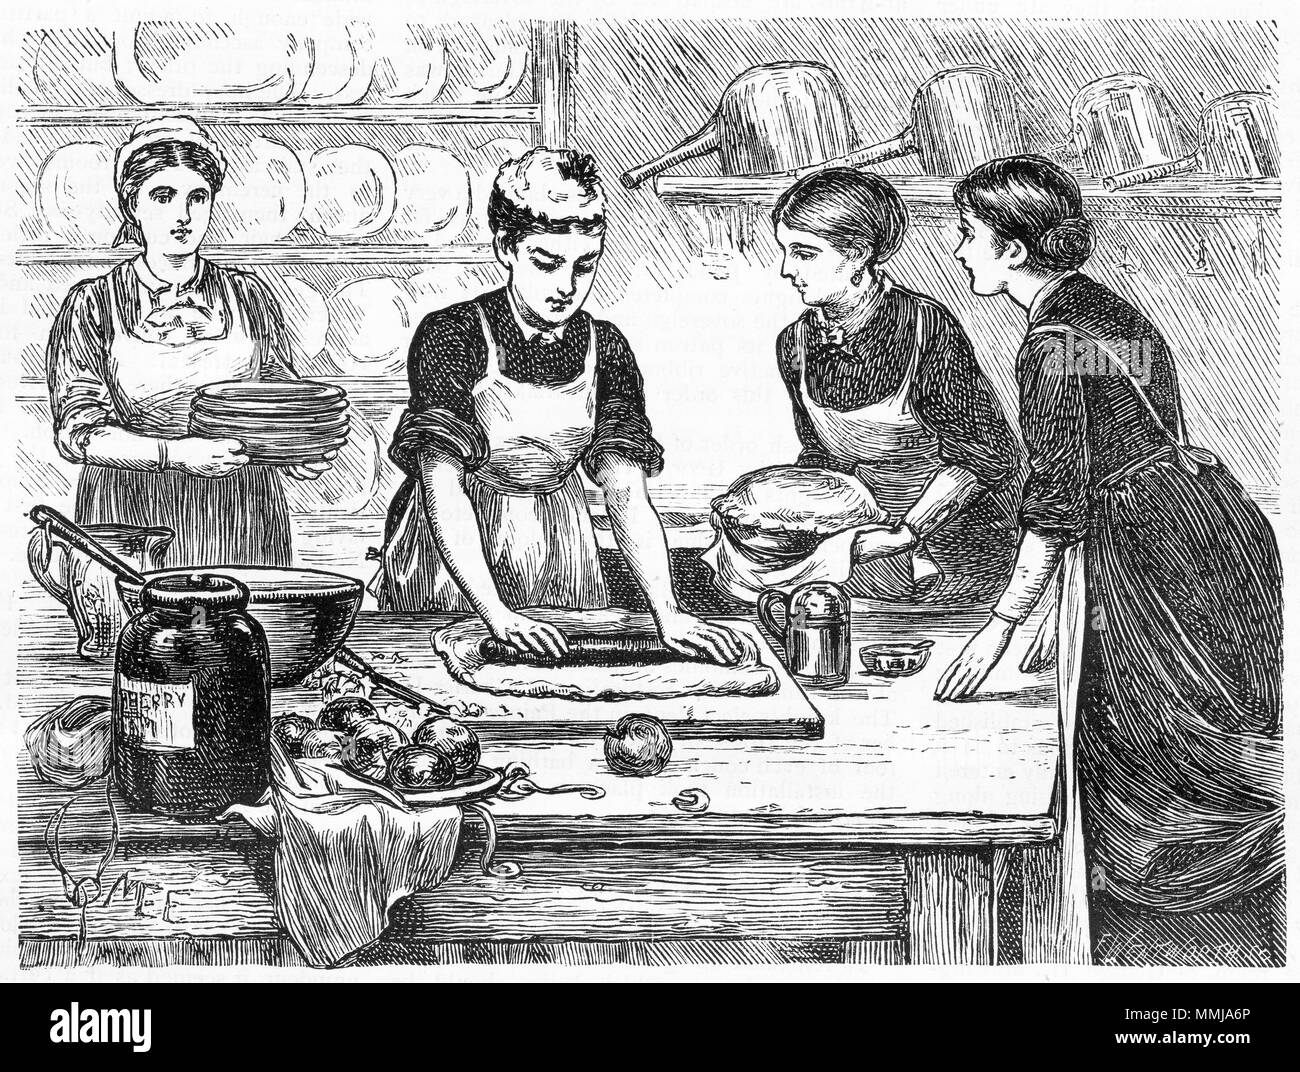 1800s Woman Cooking Stock Photos & 1800s Woman Cooking Stock Images